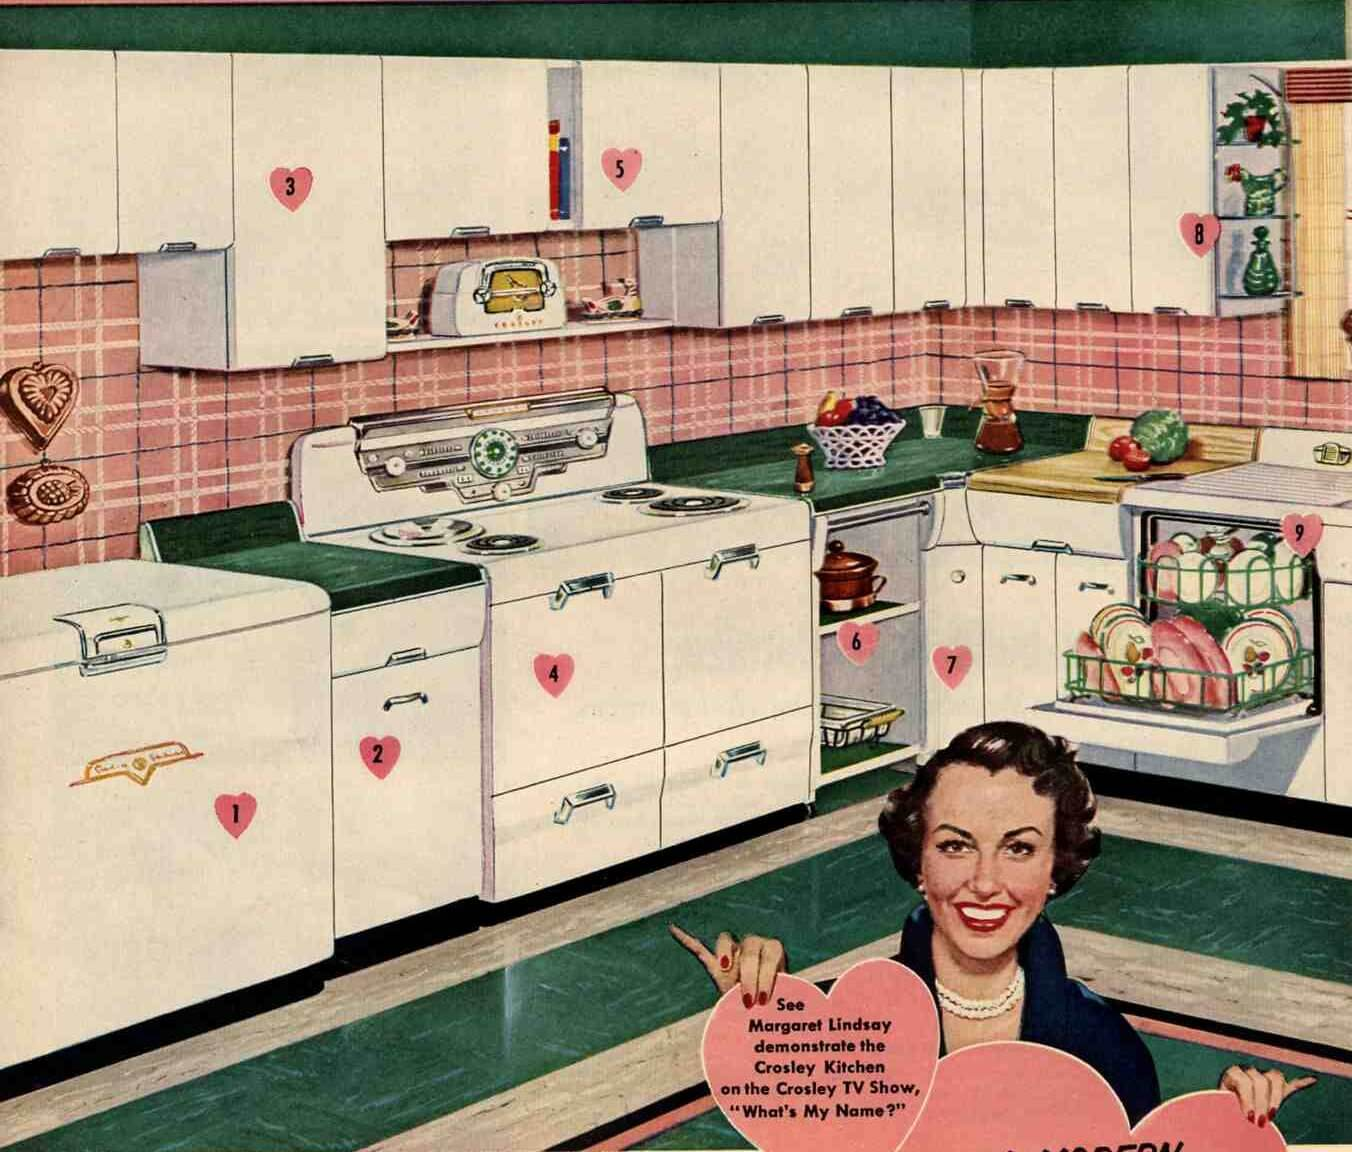 Retro Kitchen Illustration: History, Design And FAQ